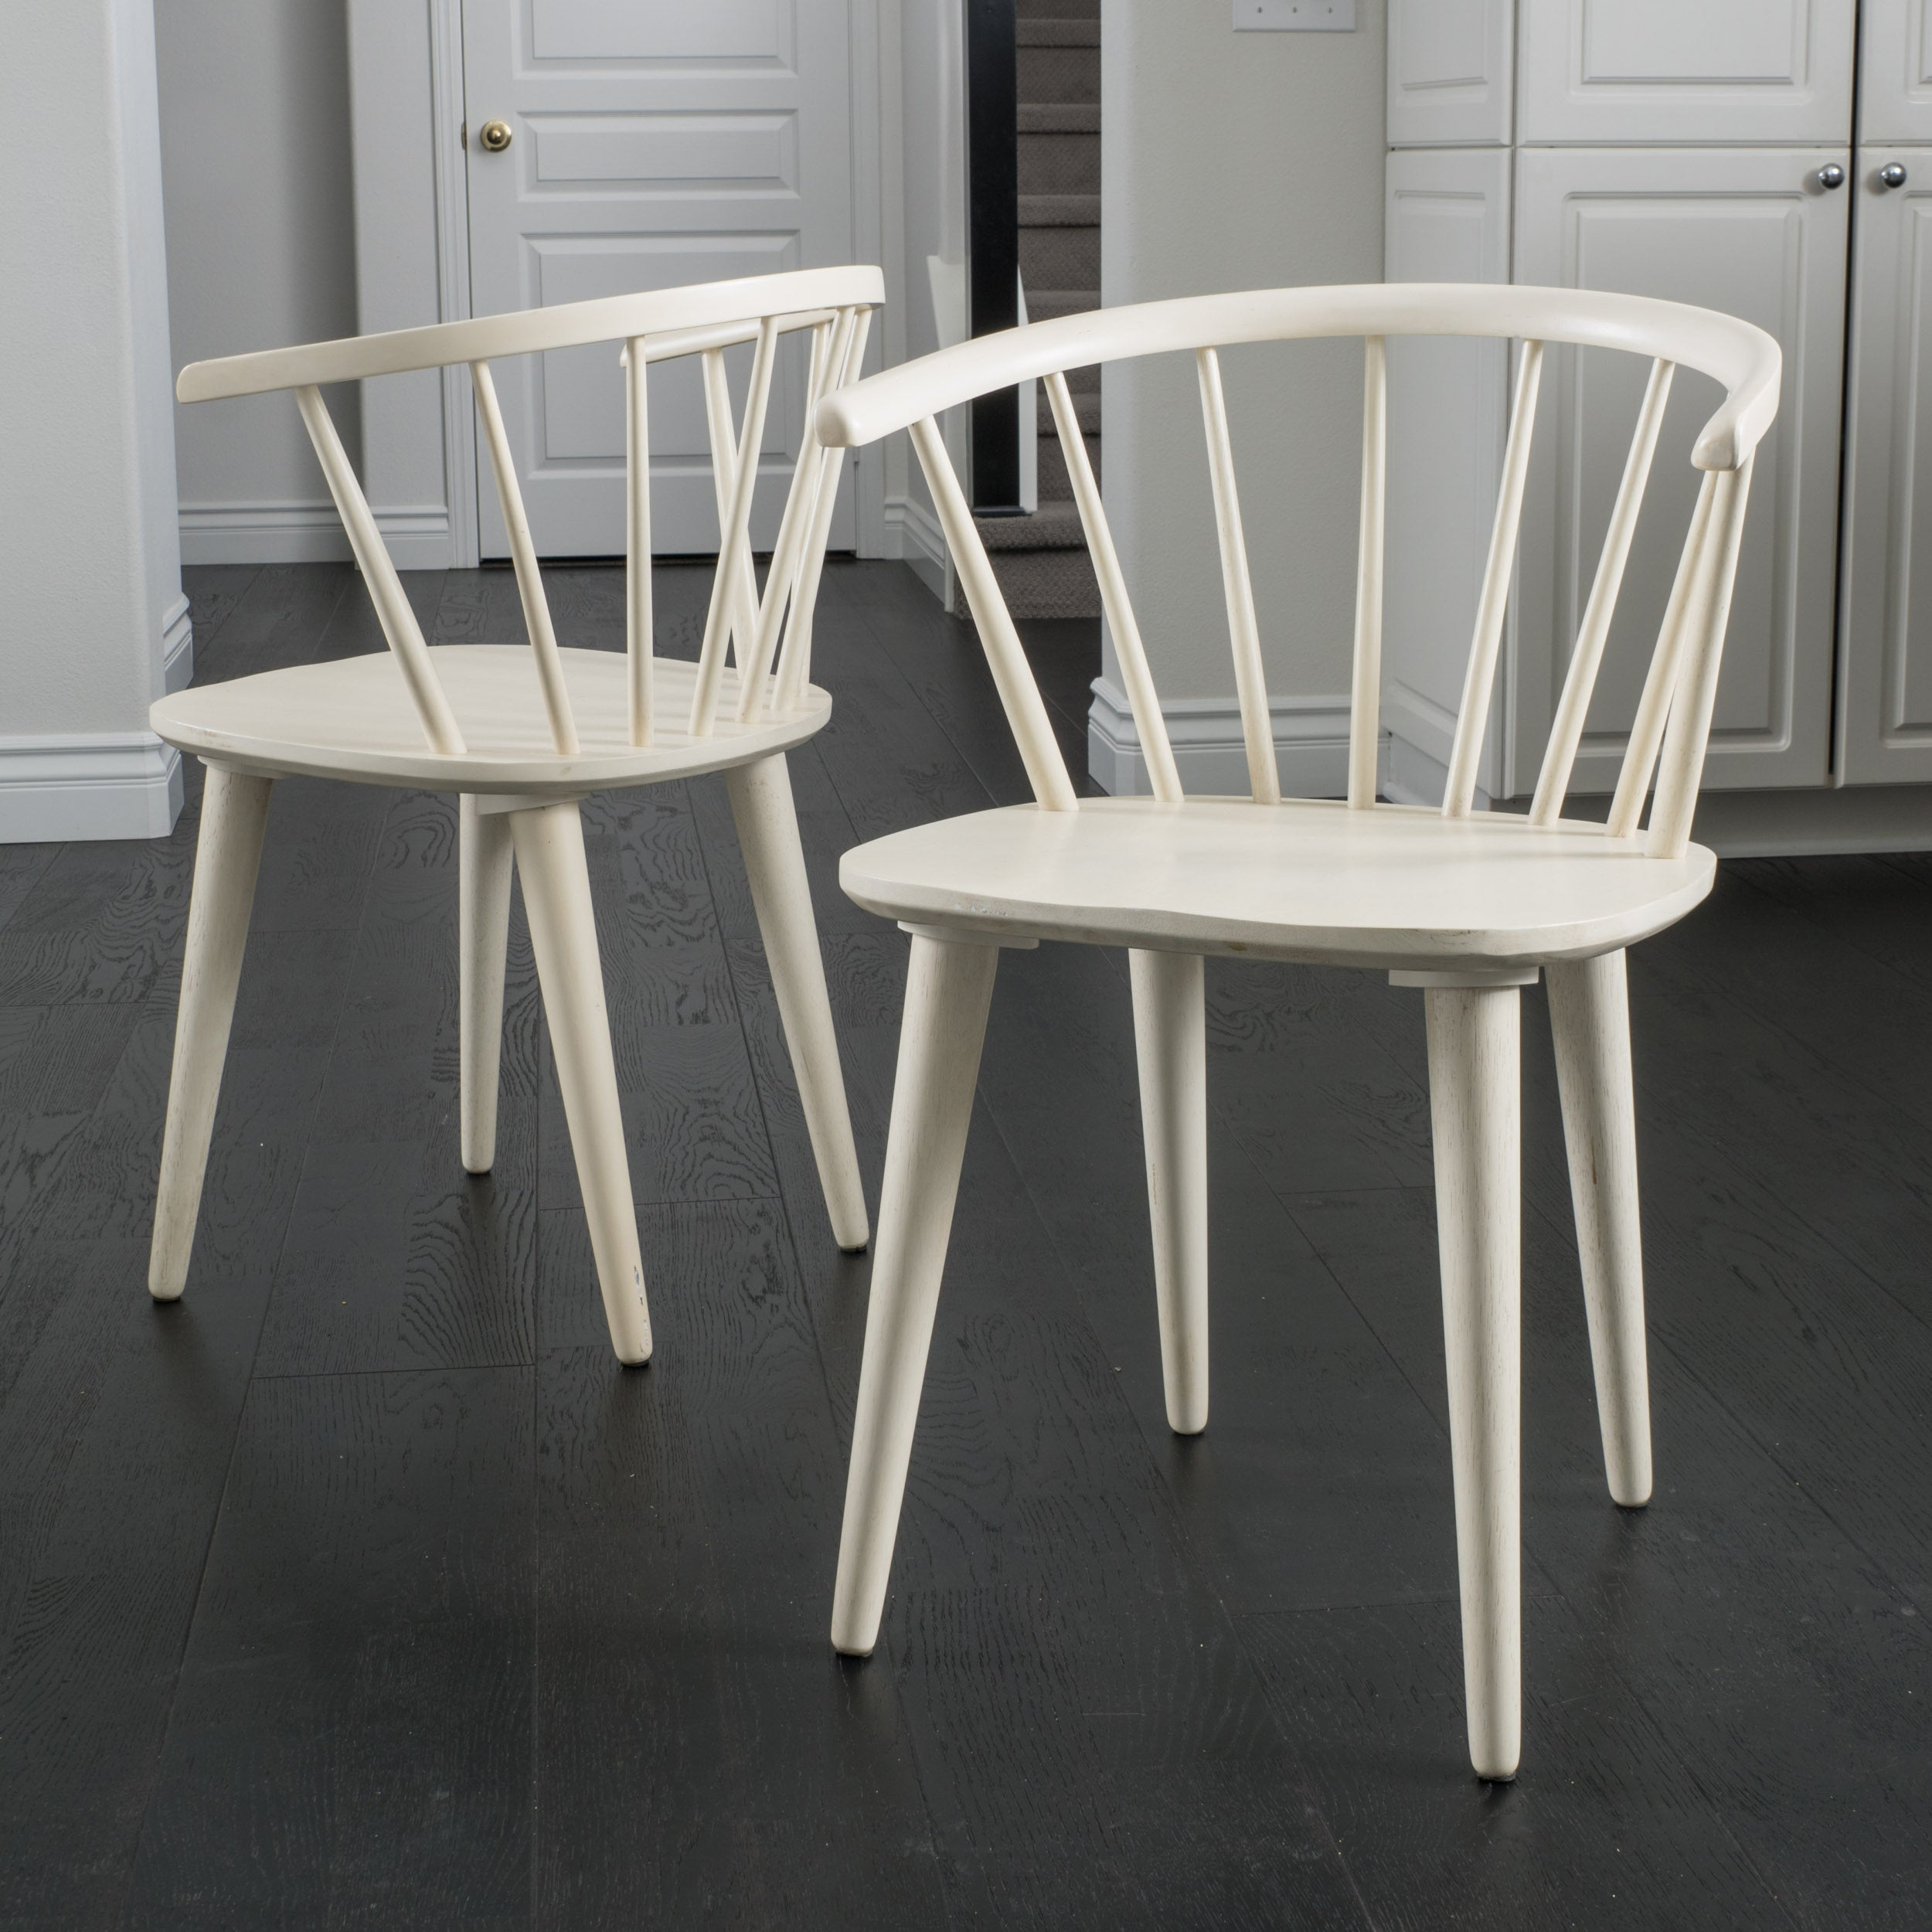 Countryside Rounded Back Spindle Wood Dining Chair Set Of 2 By Christopher Knight Home On Free Shipping Today 10481480